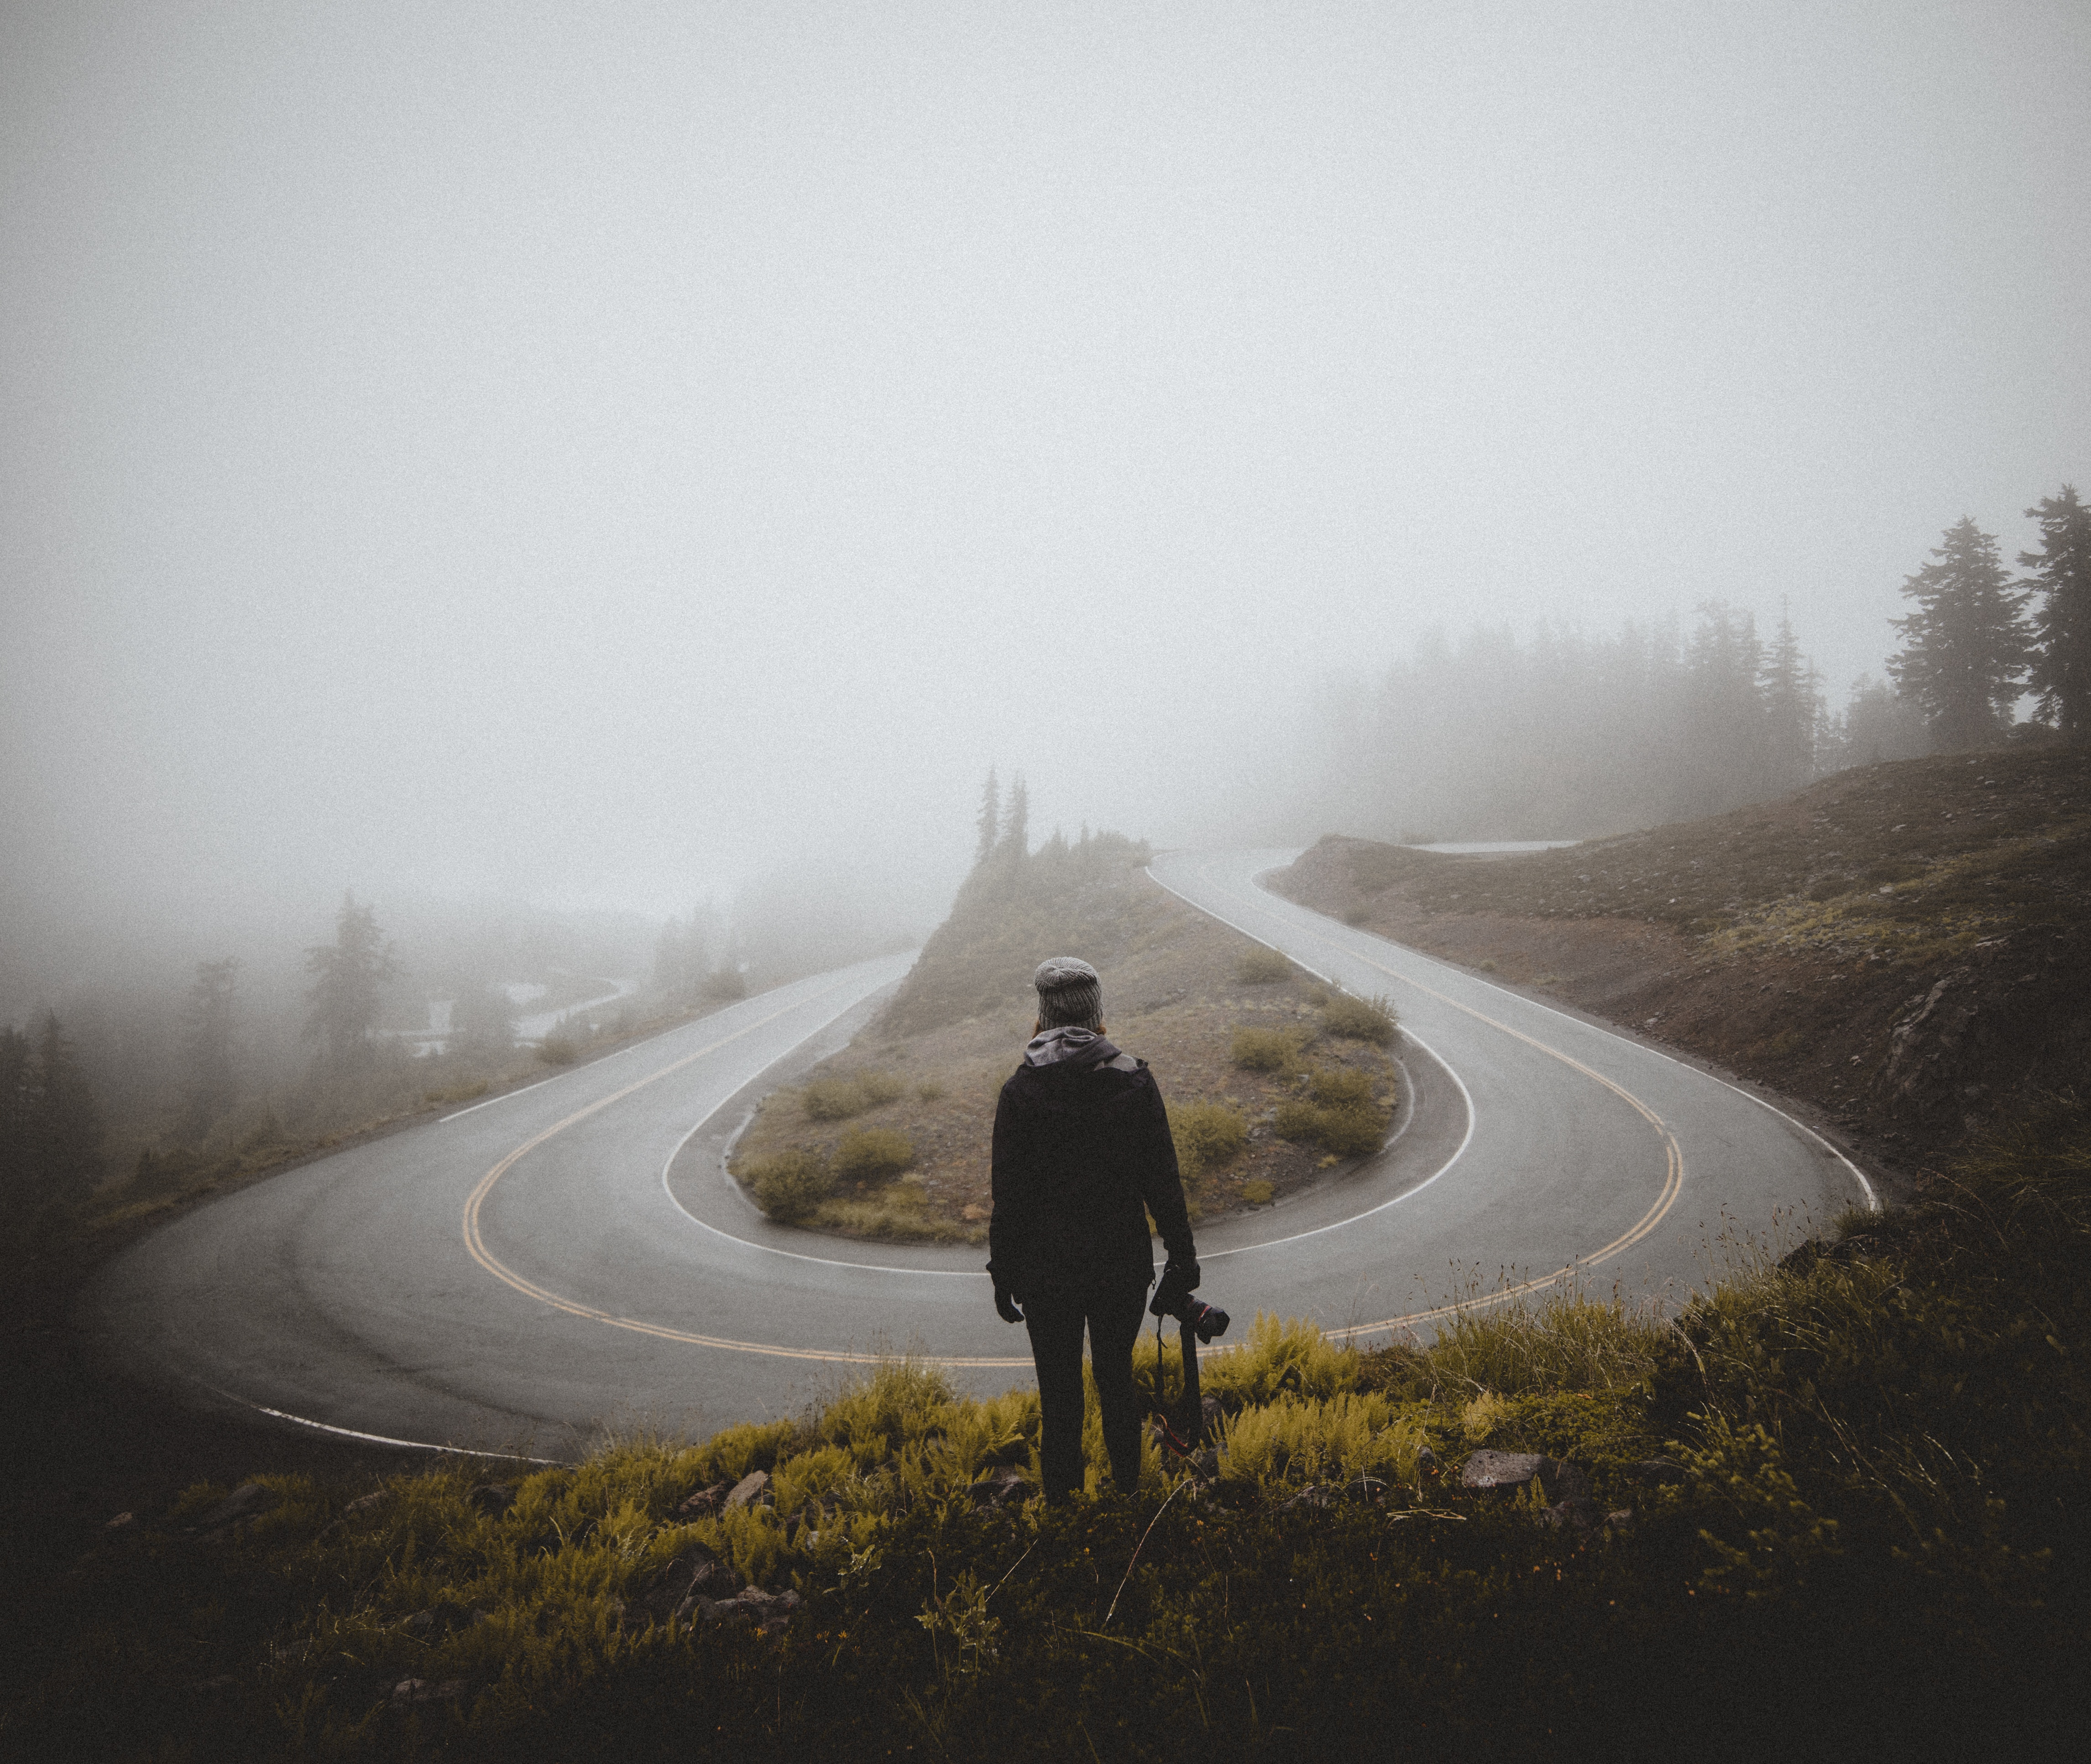 Photo Of U-bend In Road And Man Looking At It To Signify A Turning Point